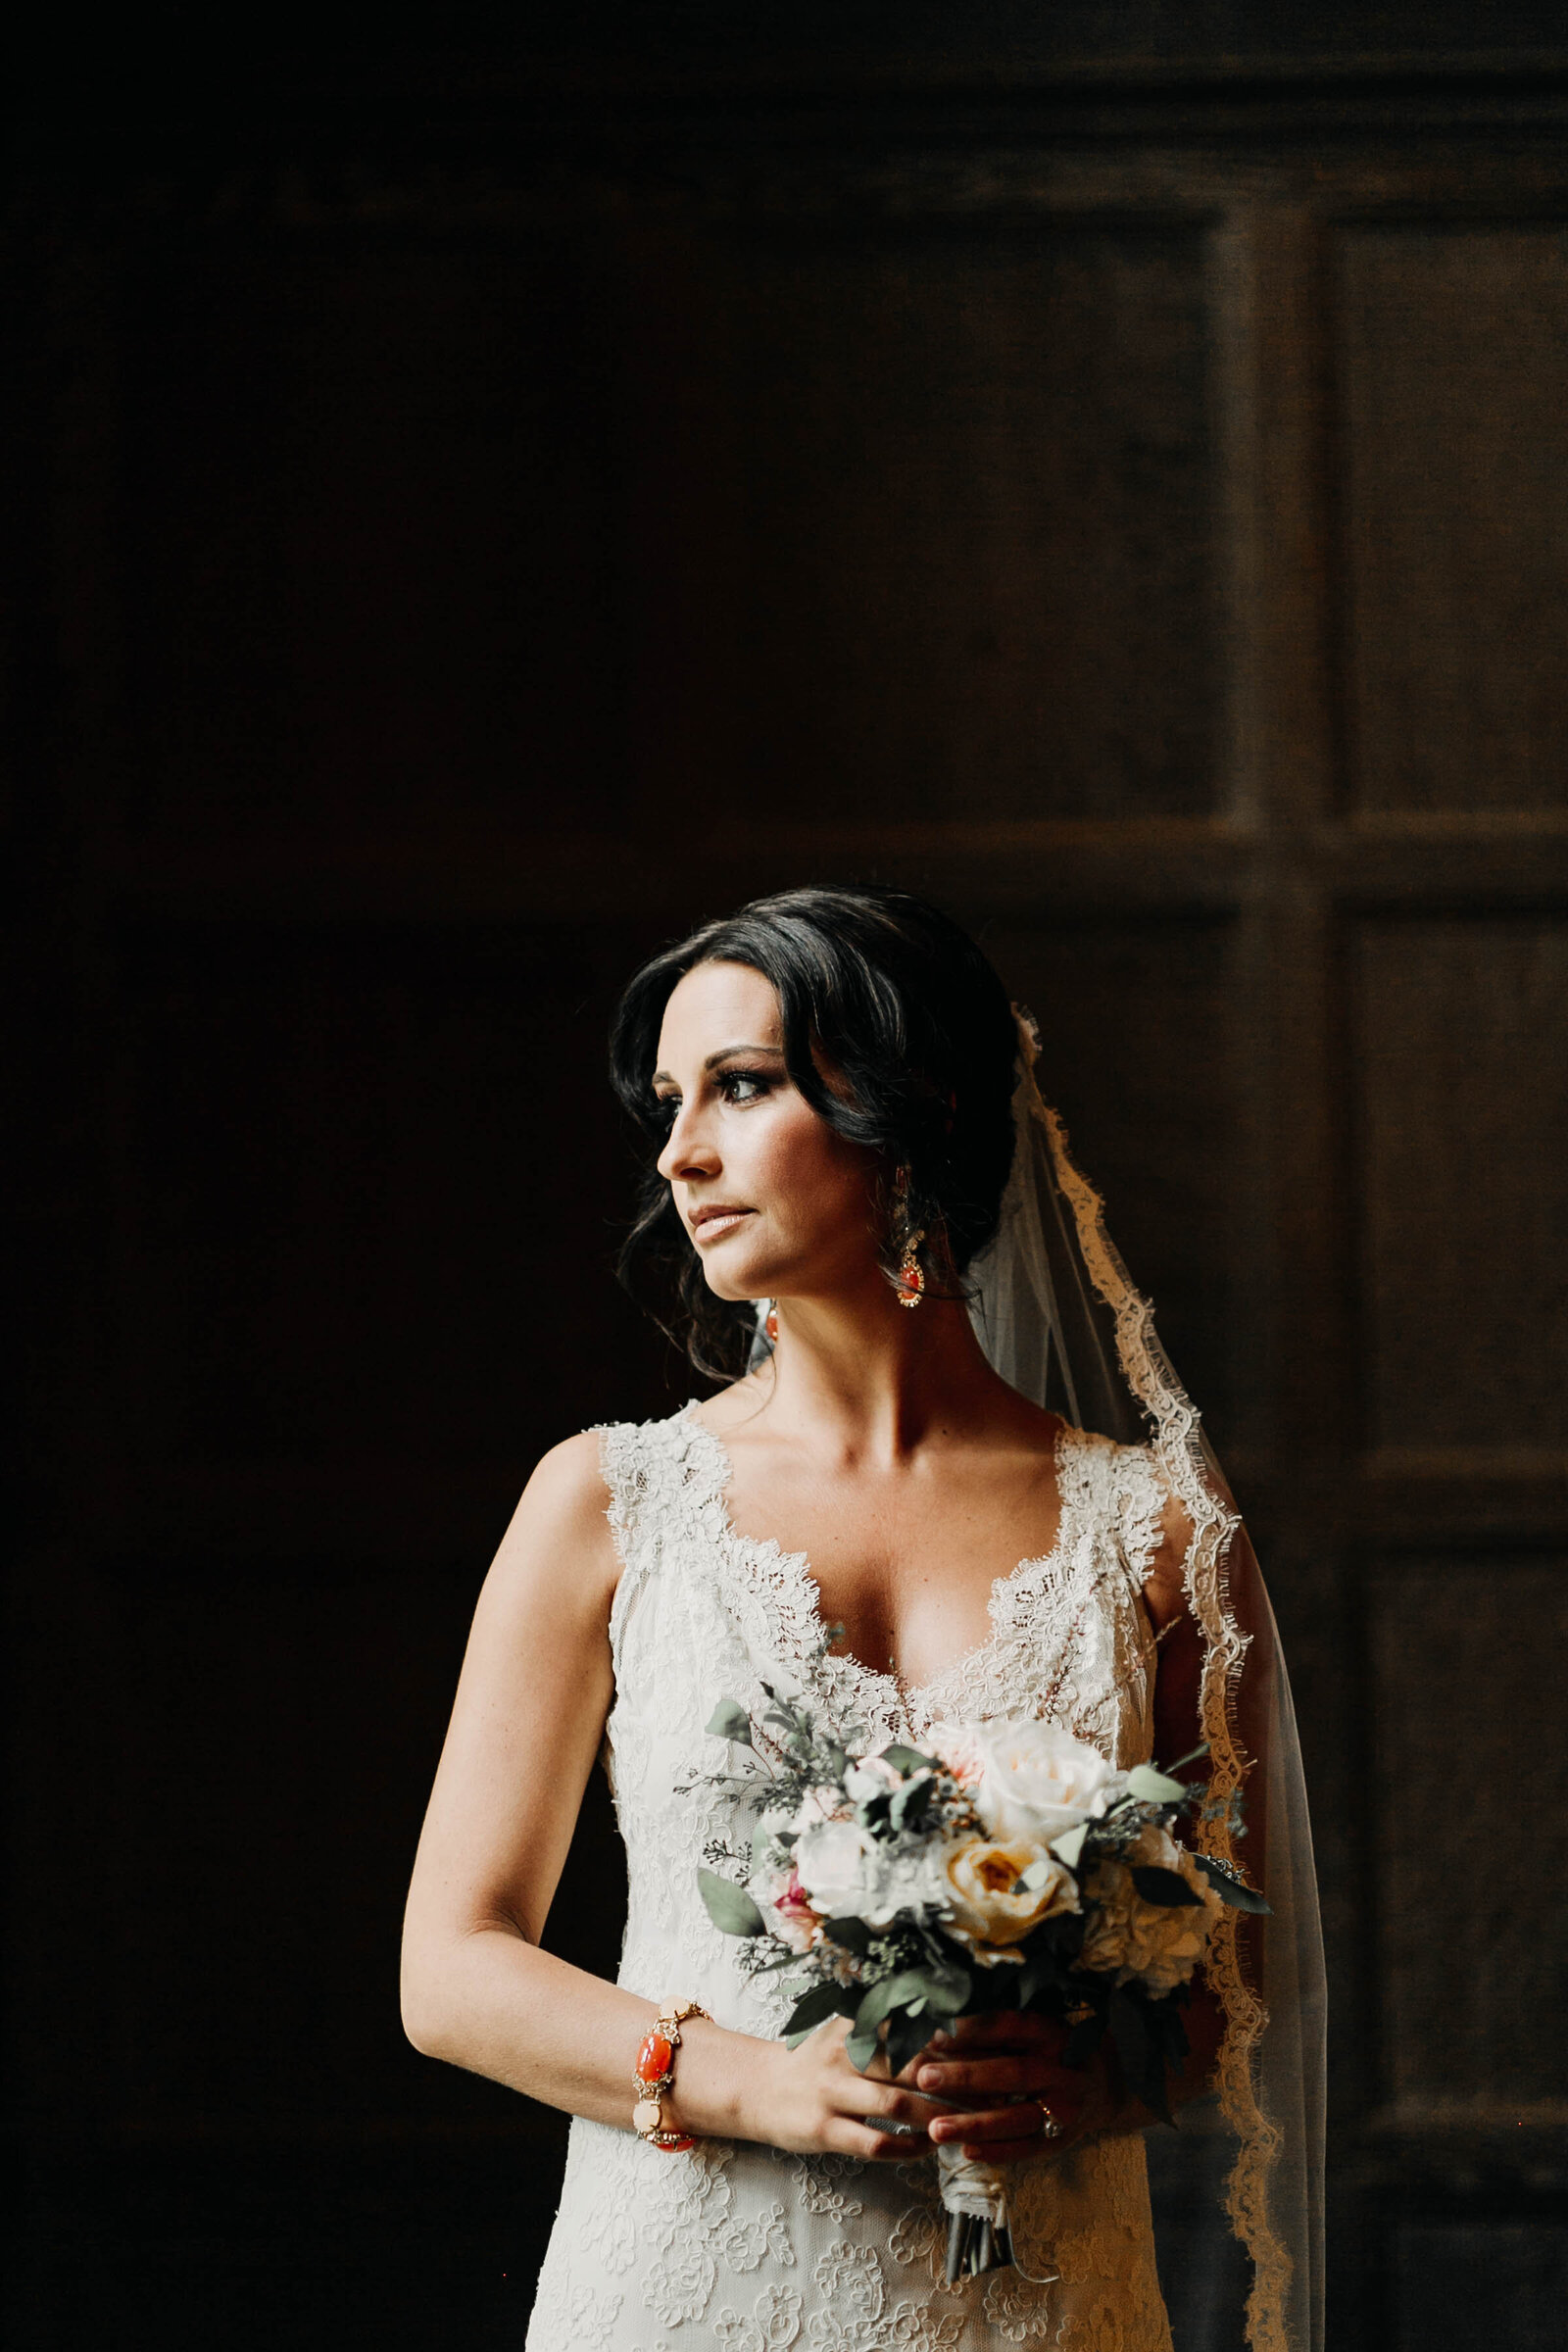 bride with lace dress at window light